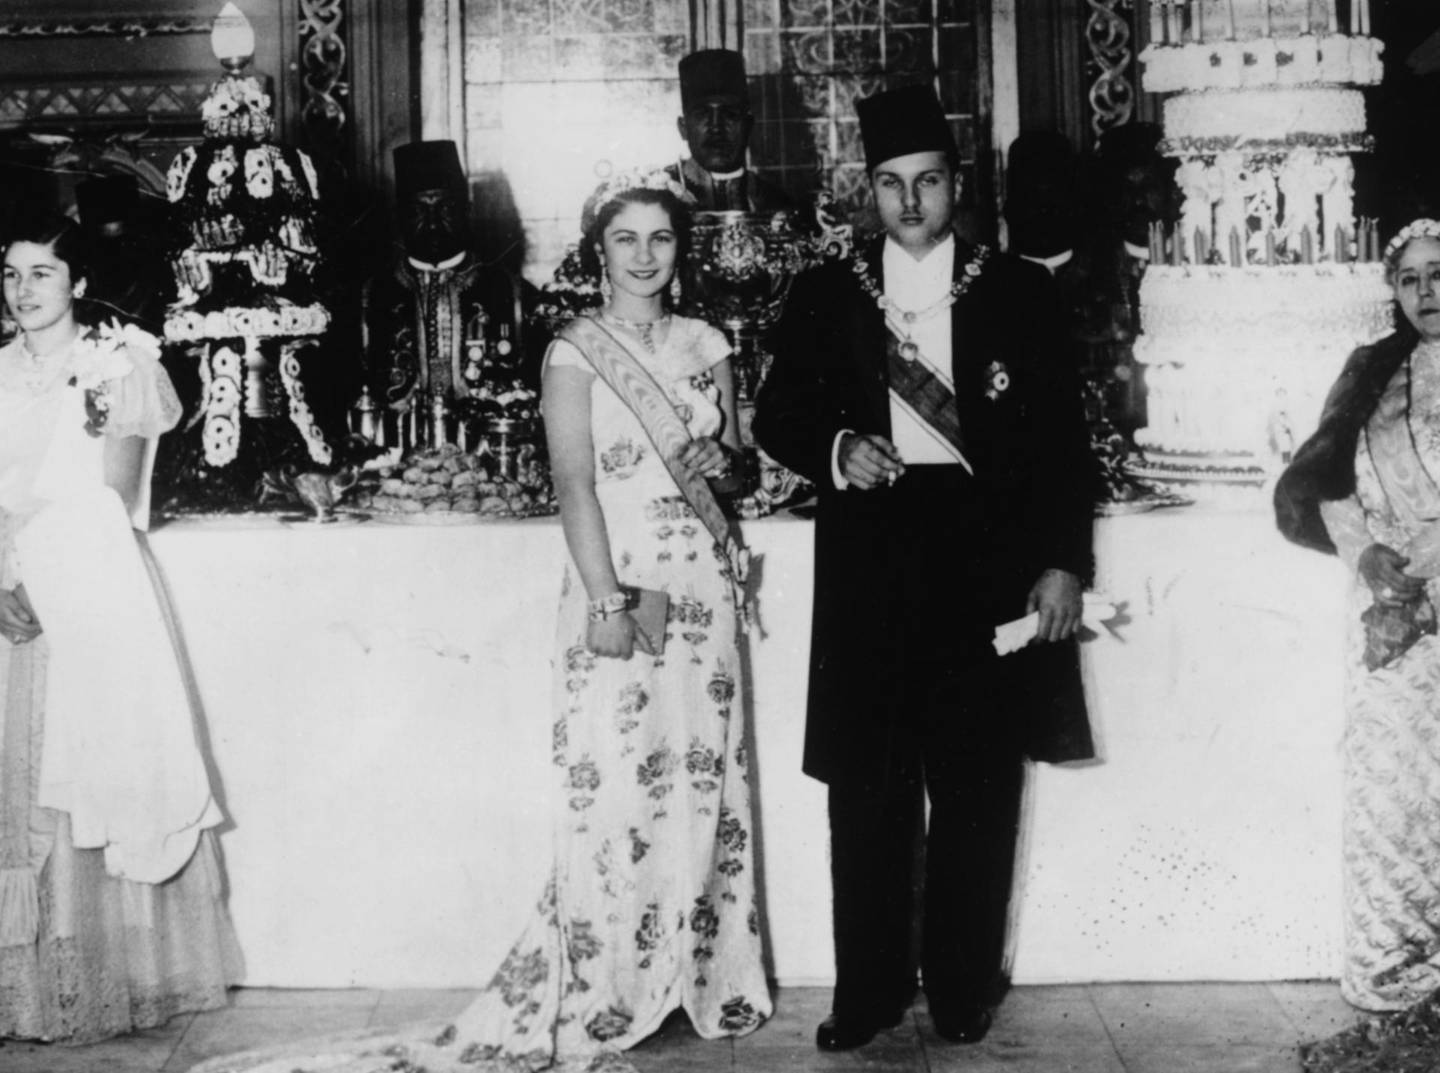 King Farouk and Queen Farida of Egypt at an event, circa 1940. (Photo by Keystone/Hulton Archive/Getty Images)